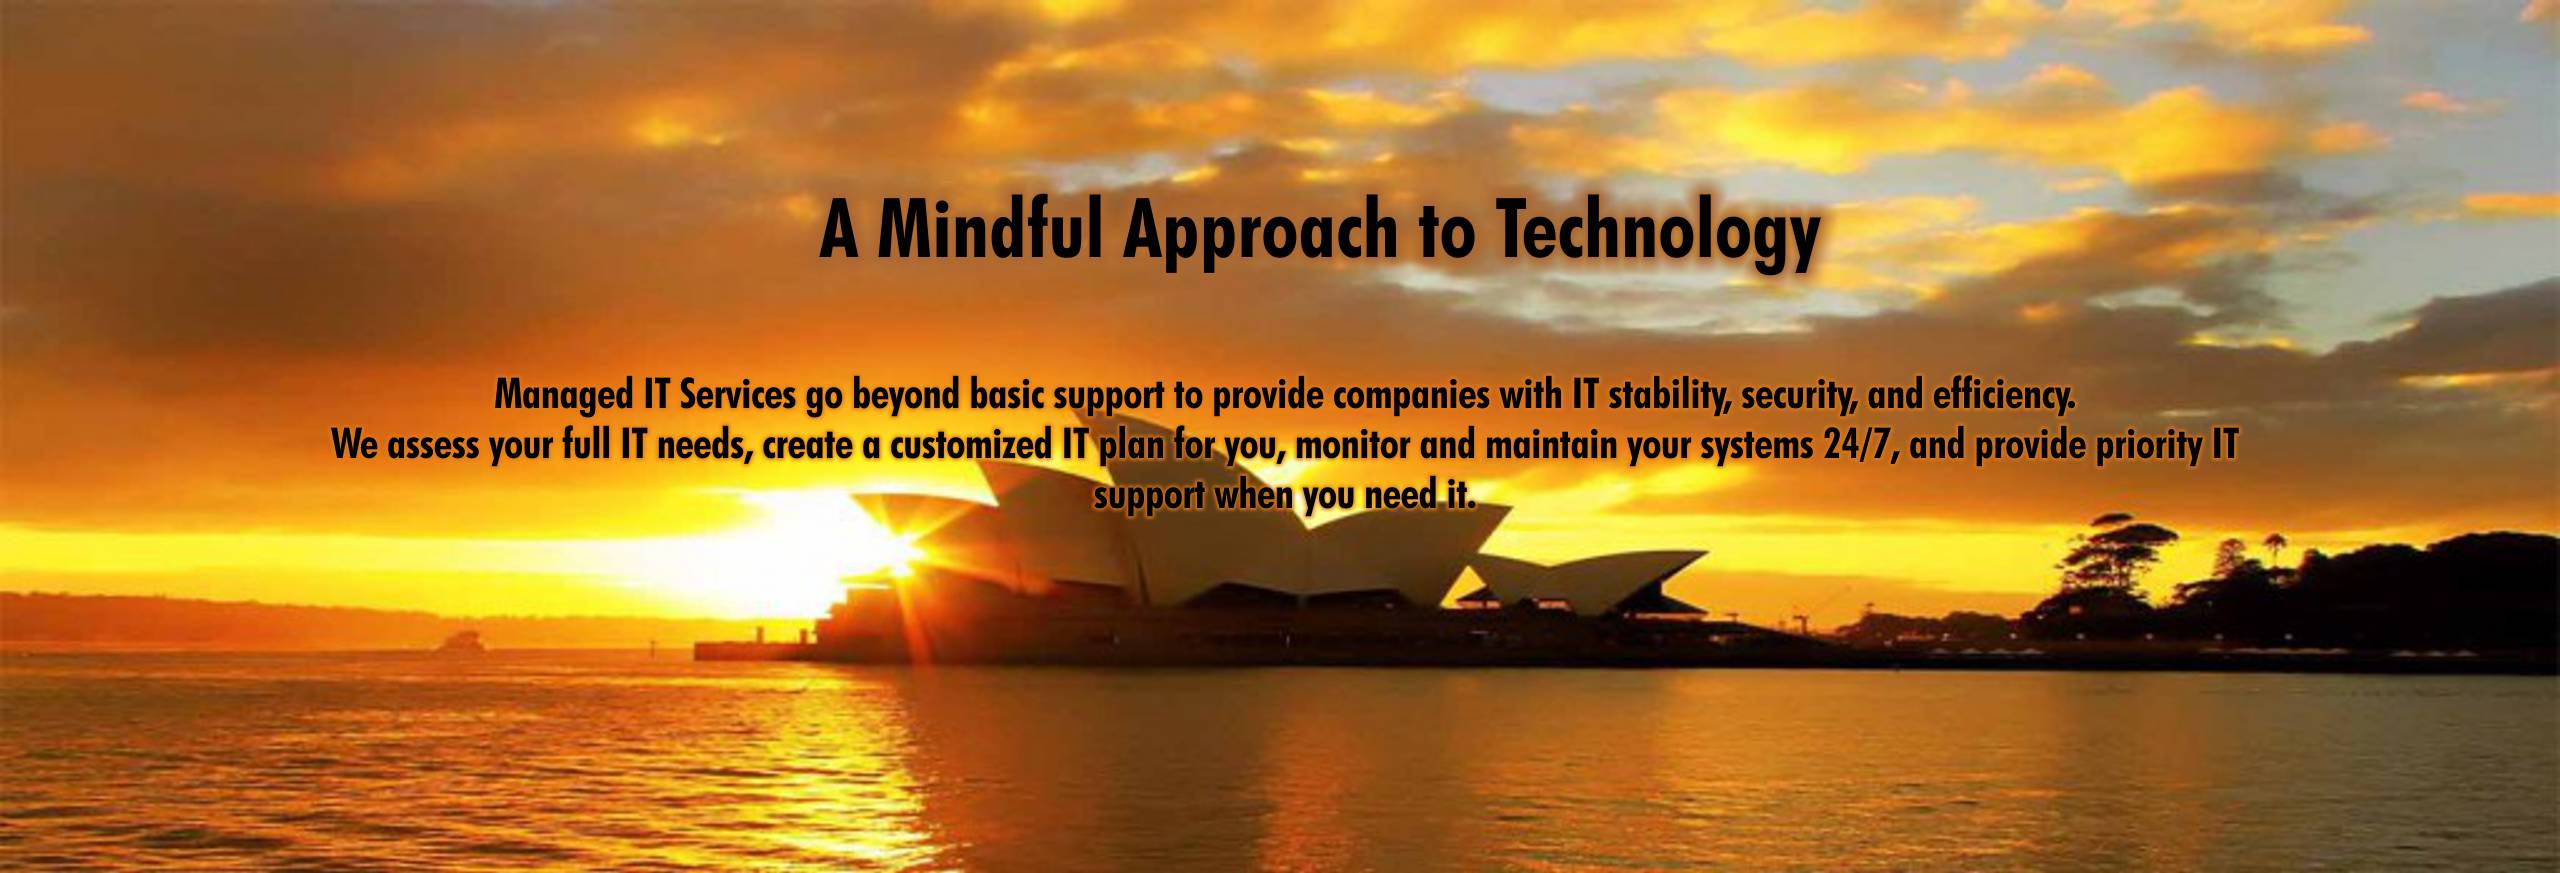 managed-page-banner-2560-x-873